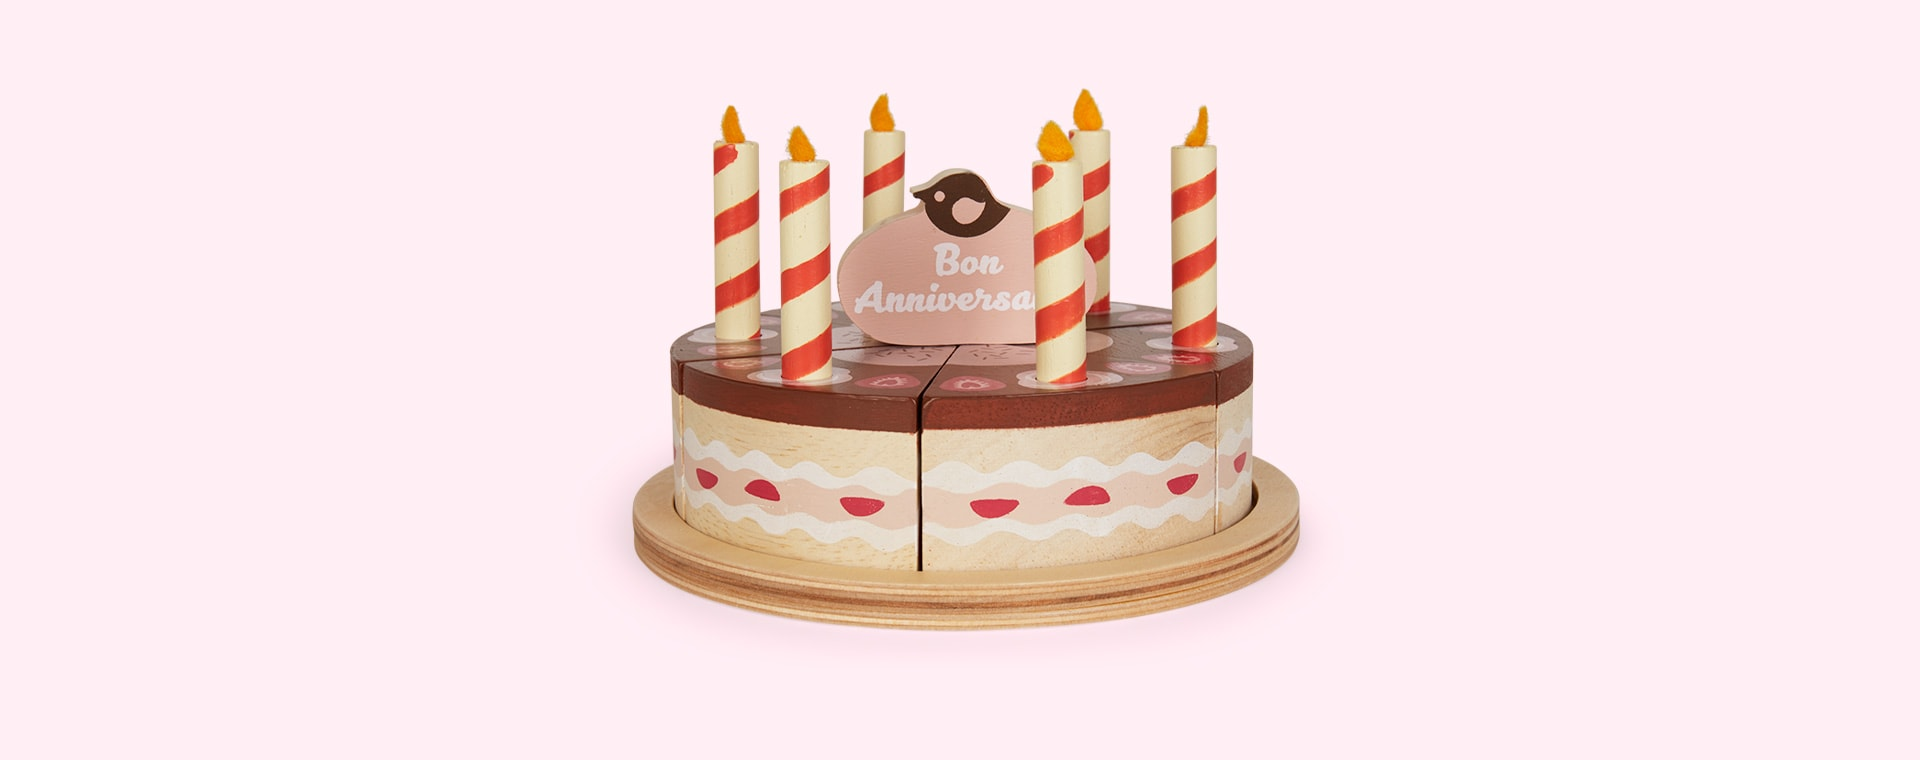 Brown Tender Leaf Toys Chocolate Birthday Cake